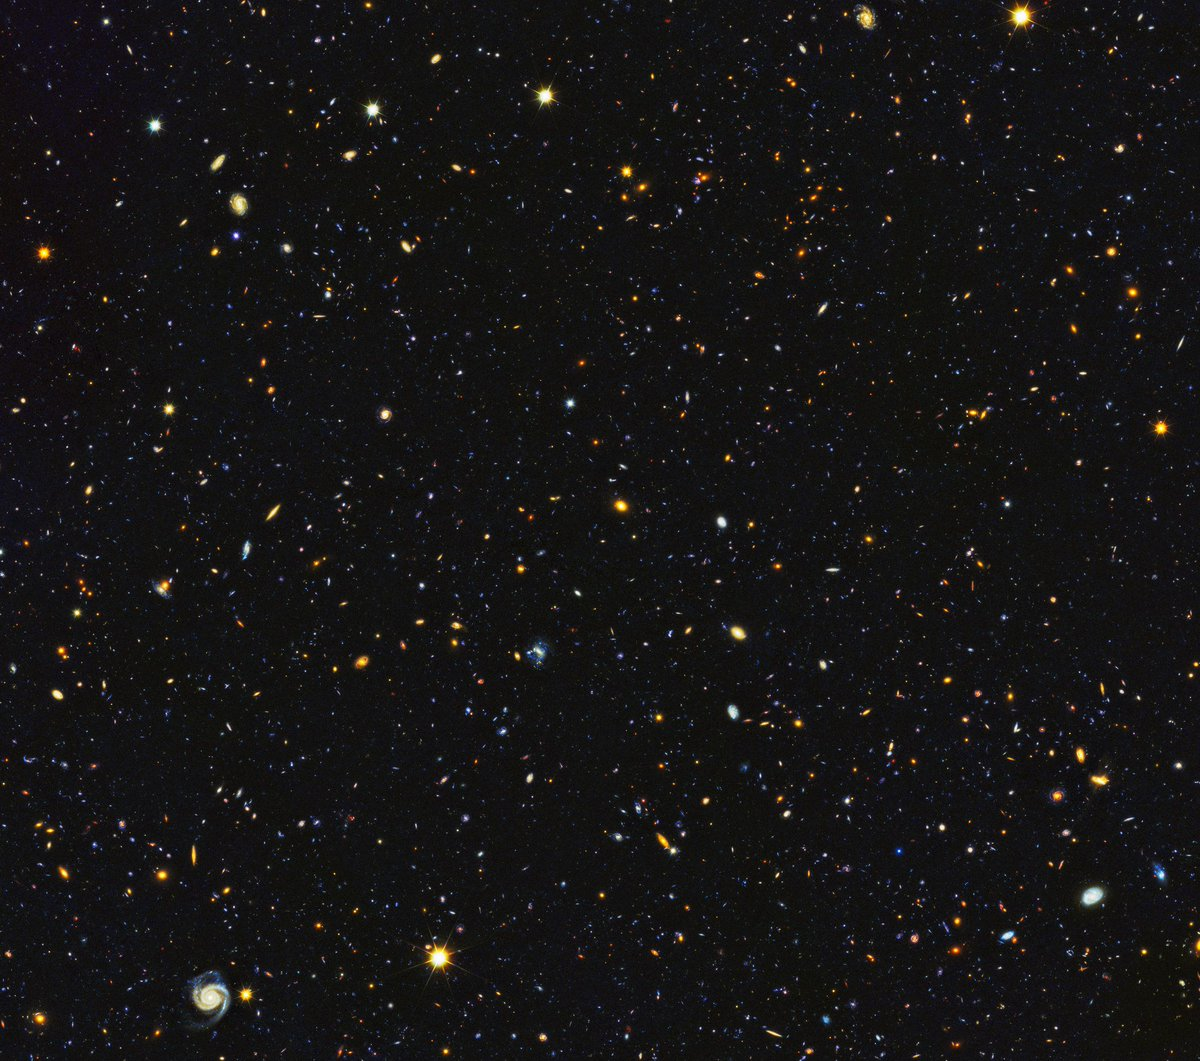 The Hubble Space Telescope is a time machine. Images like this reveal the earliest galaxies. This particular photo, captured in 2014, combines infrared data, which highlights the older galaxies, and visible light, which highlights the newer ones. https://t.co/87z1cDwL09